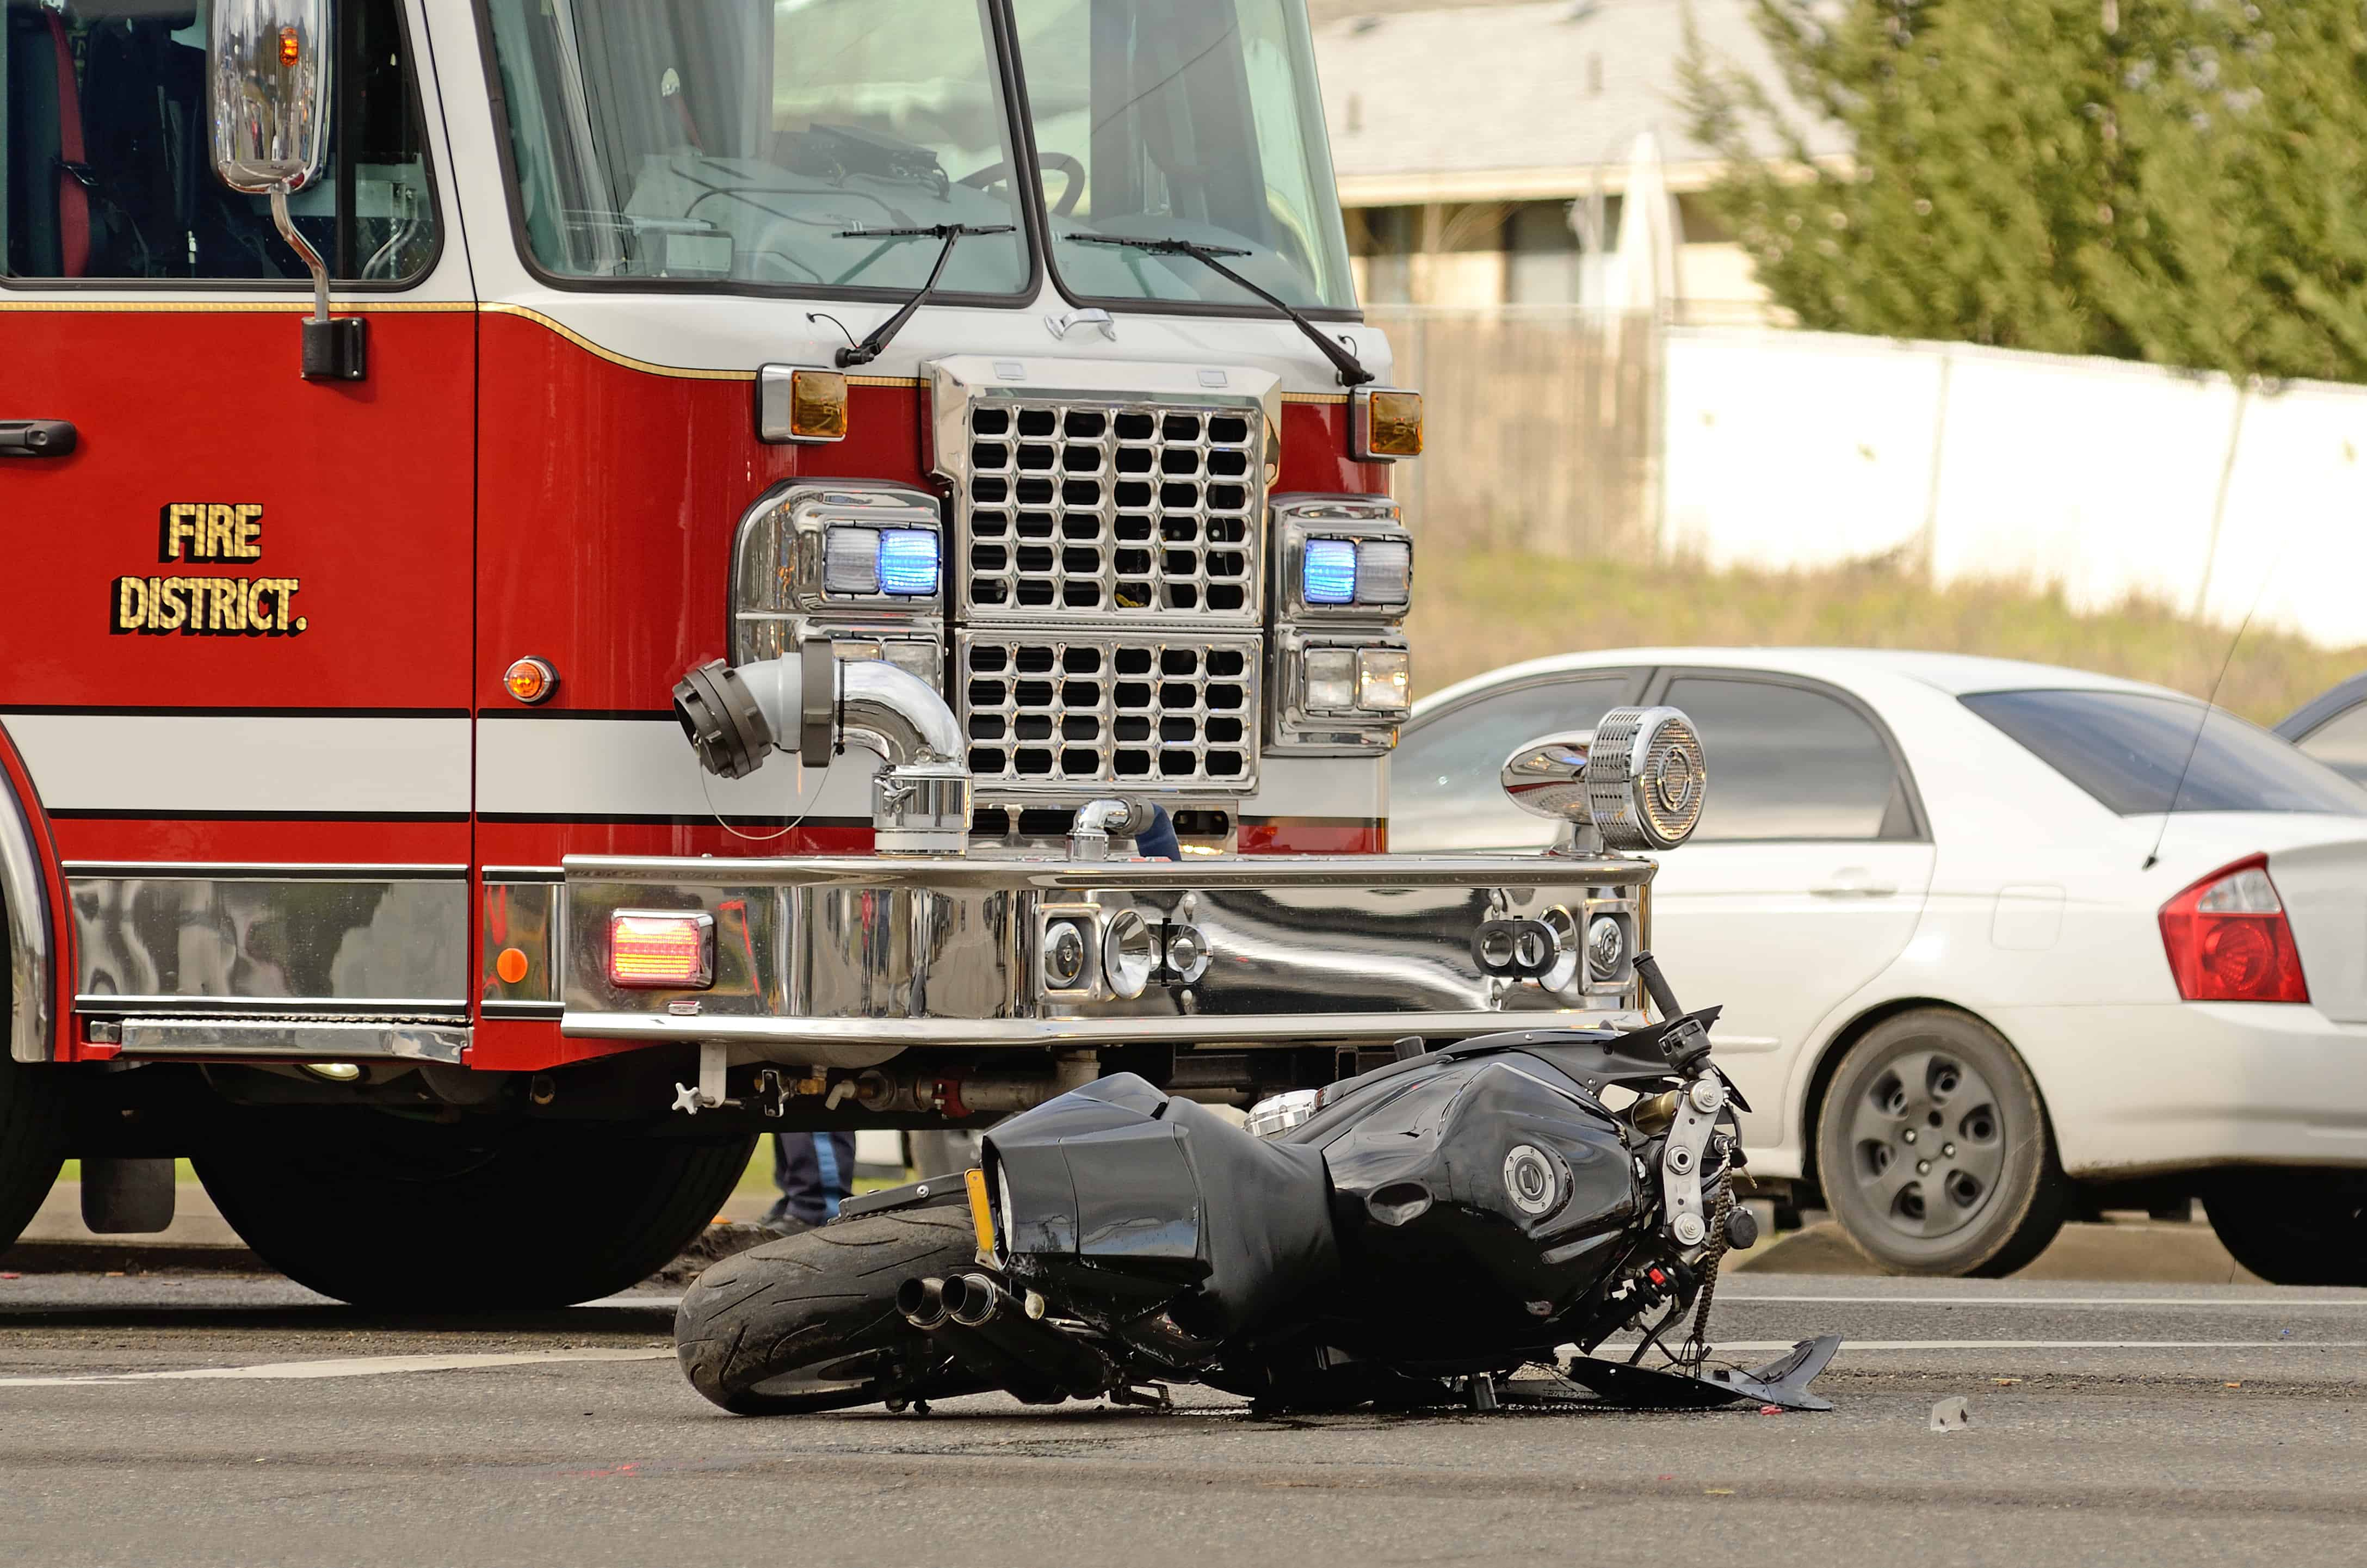 1 Killed, 2 Injured in Motorcycles VS Truck Crash on 38th Avenue and Bethany Home Road [Phoenix, AZ]